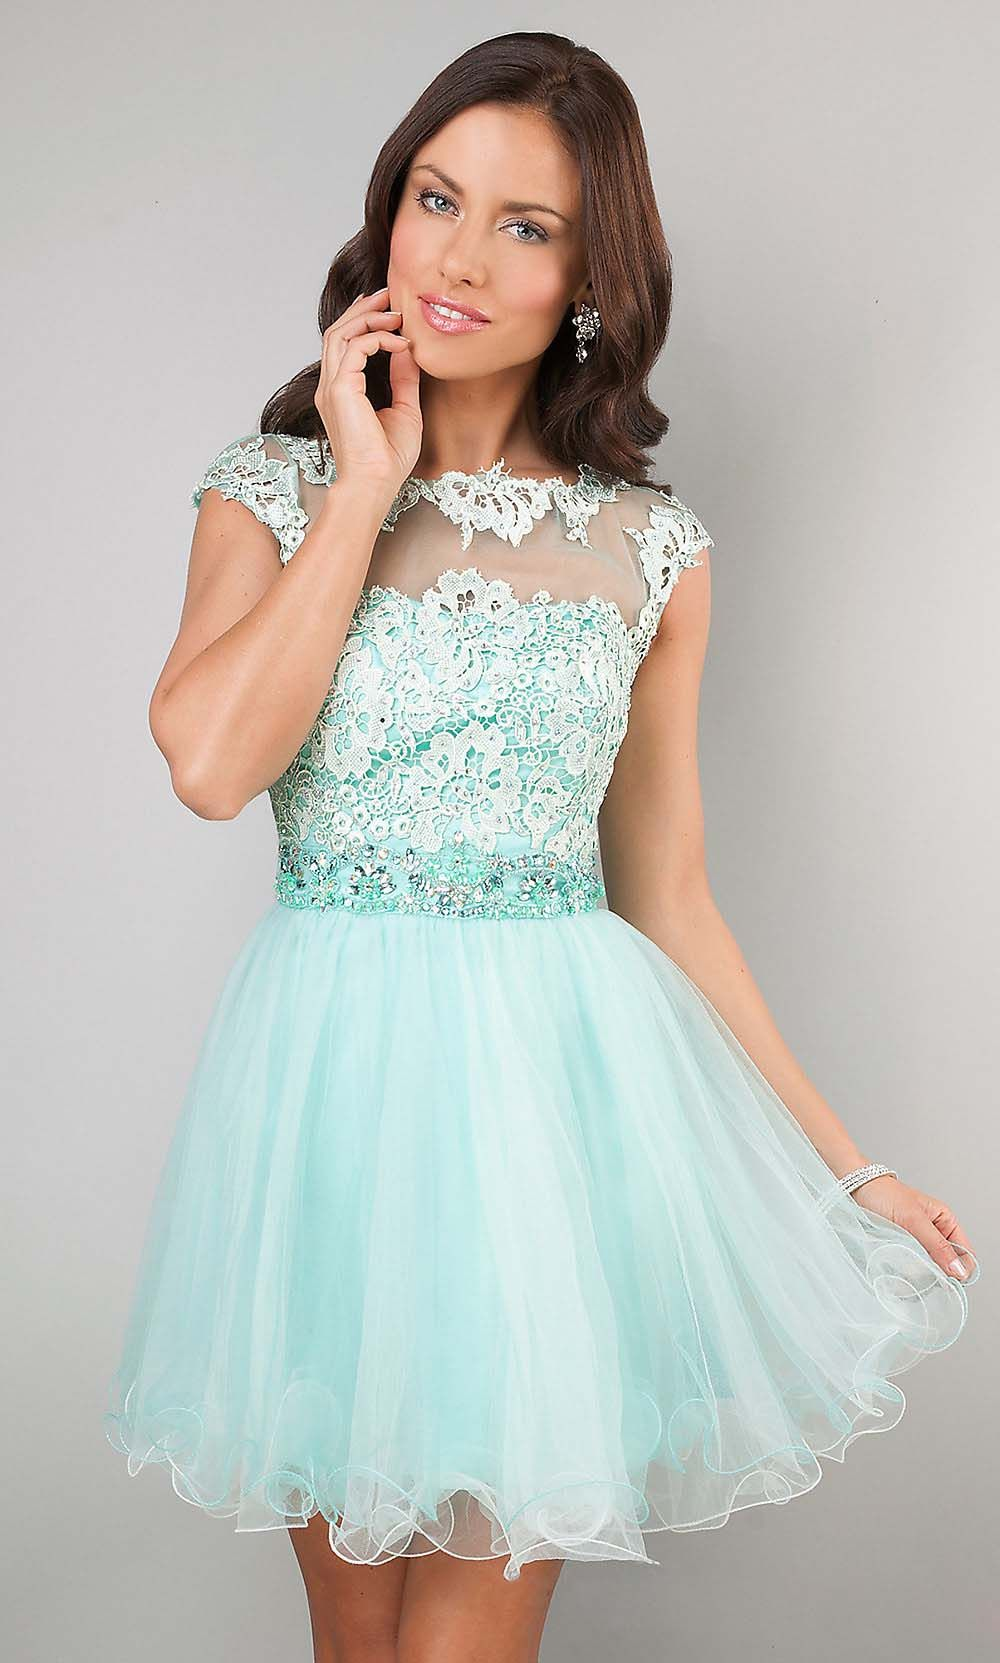 classic-cute-short-prom-dresses-new-in-cocktail-dresses-design ...